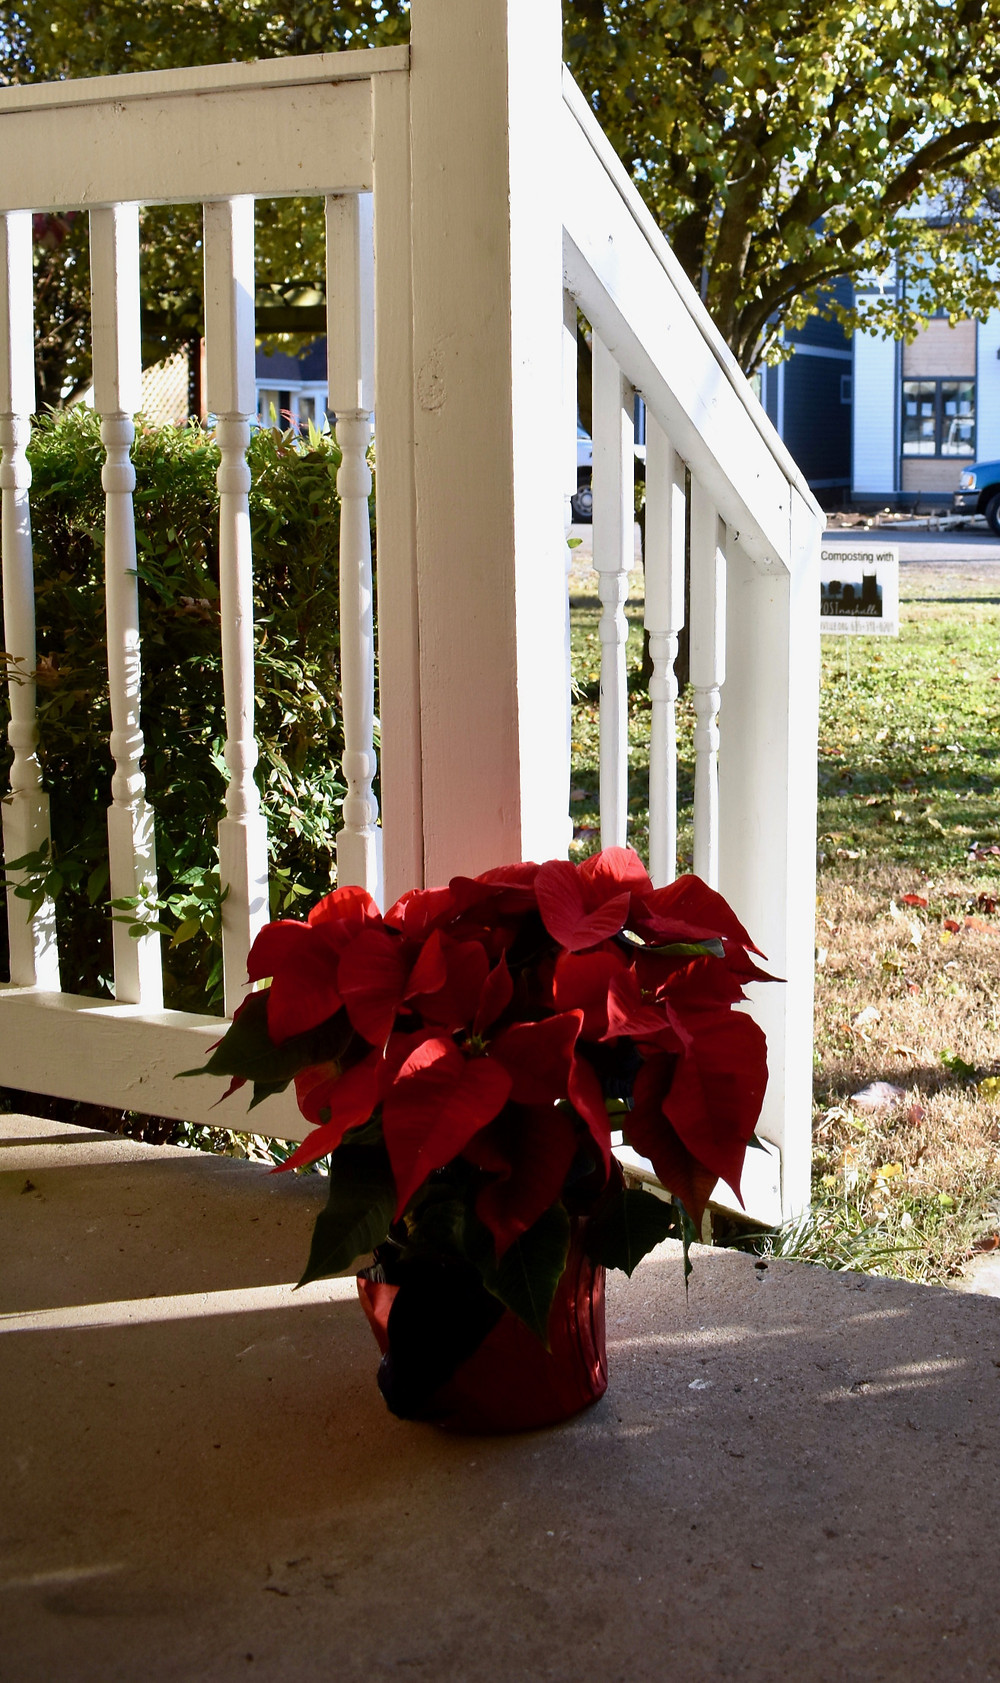 Poinsettias on Family Reconciliation Center's front porch, Christmas 2019